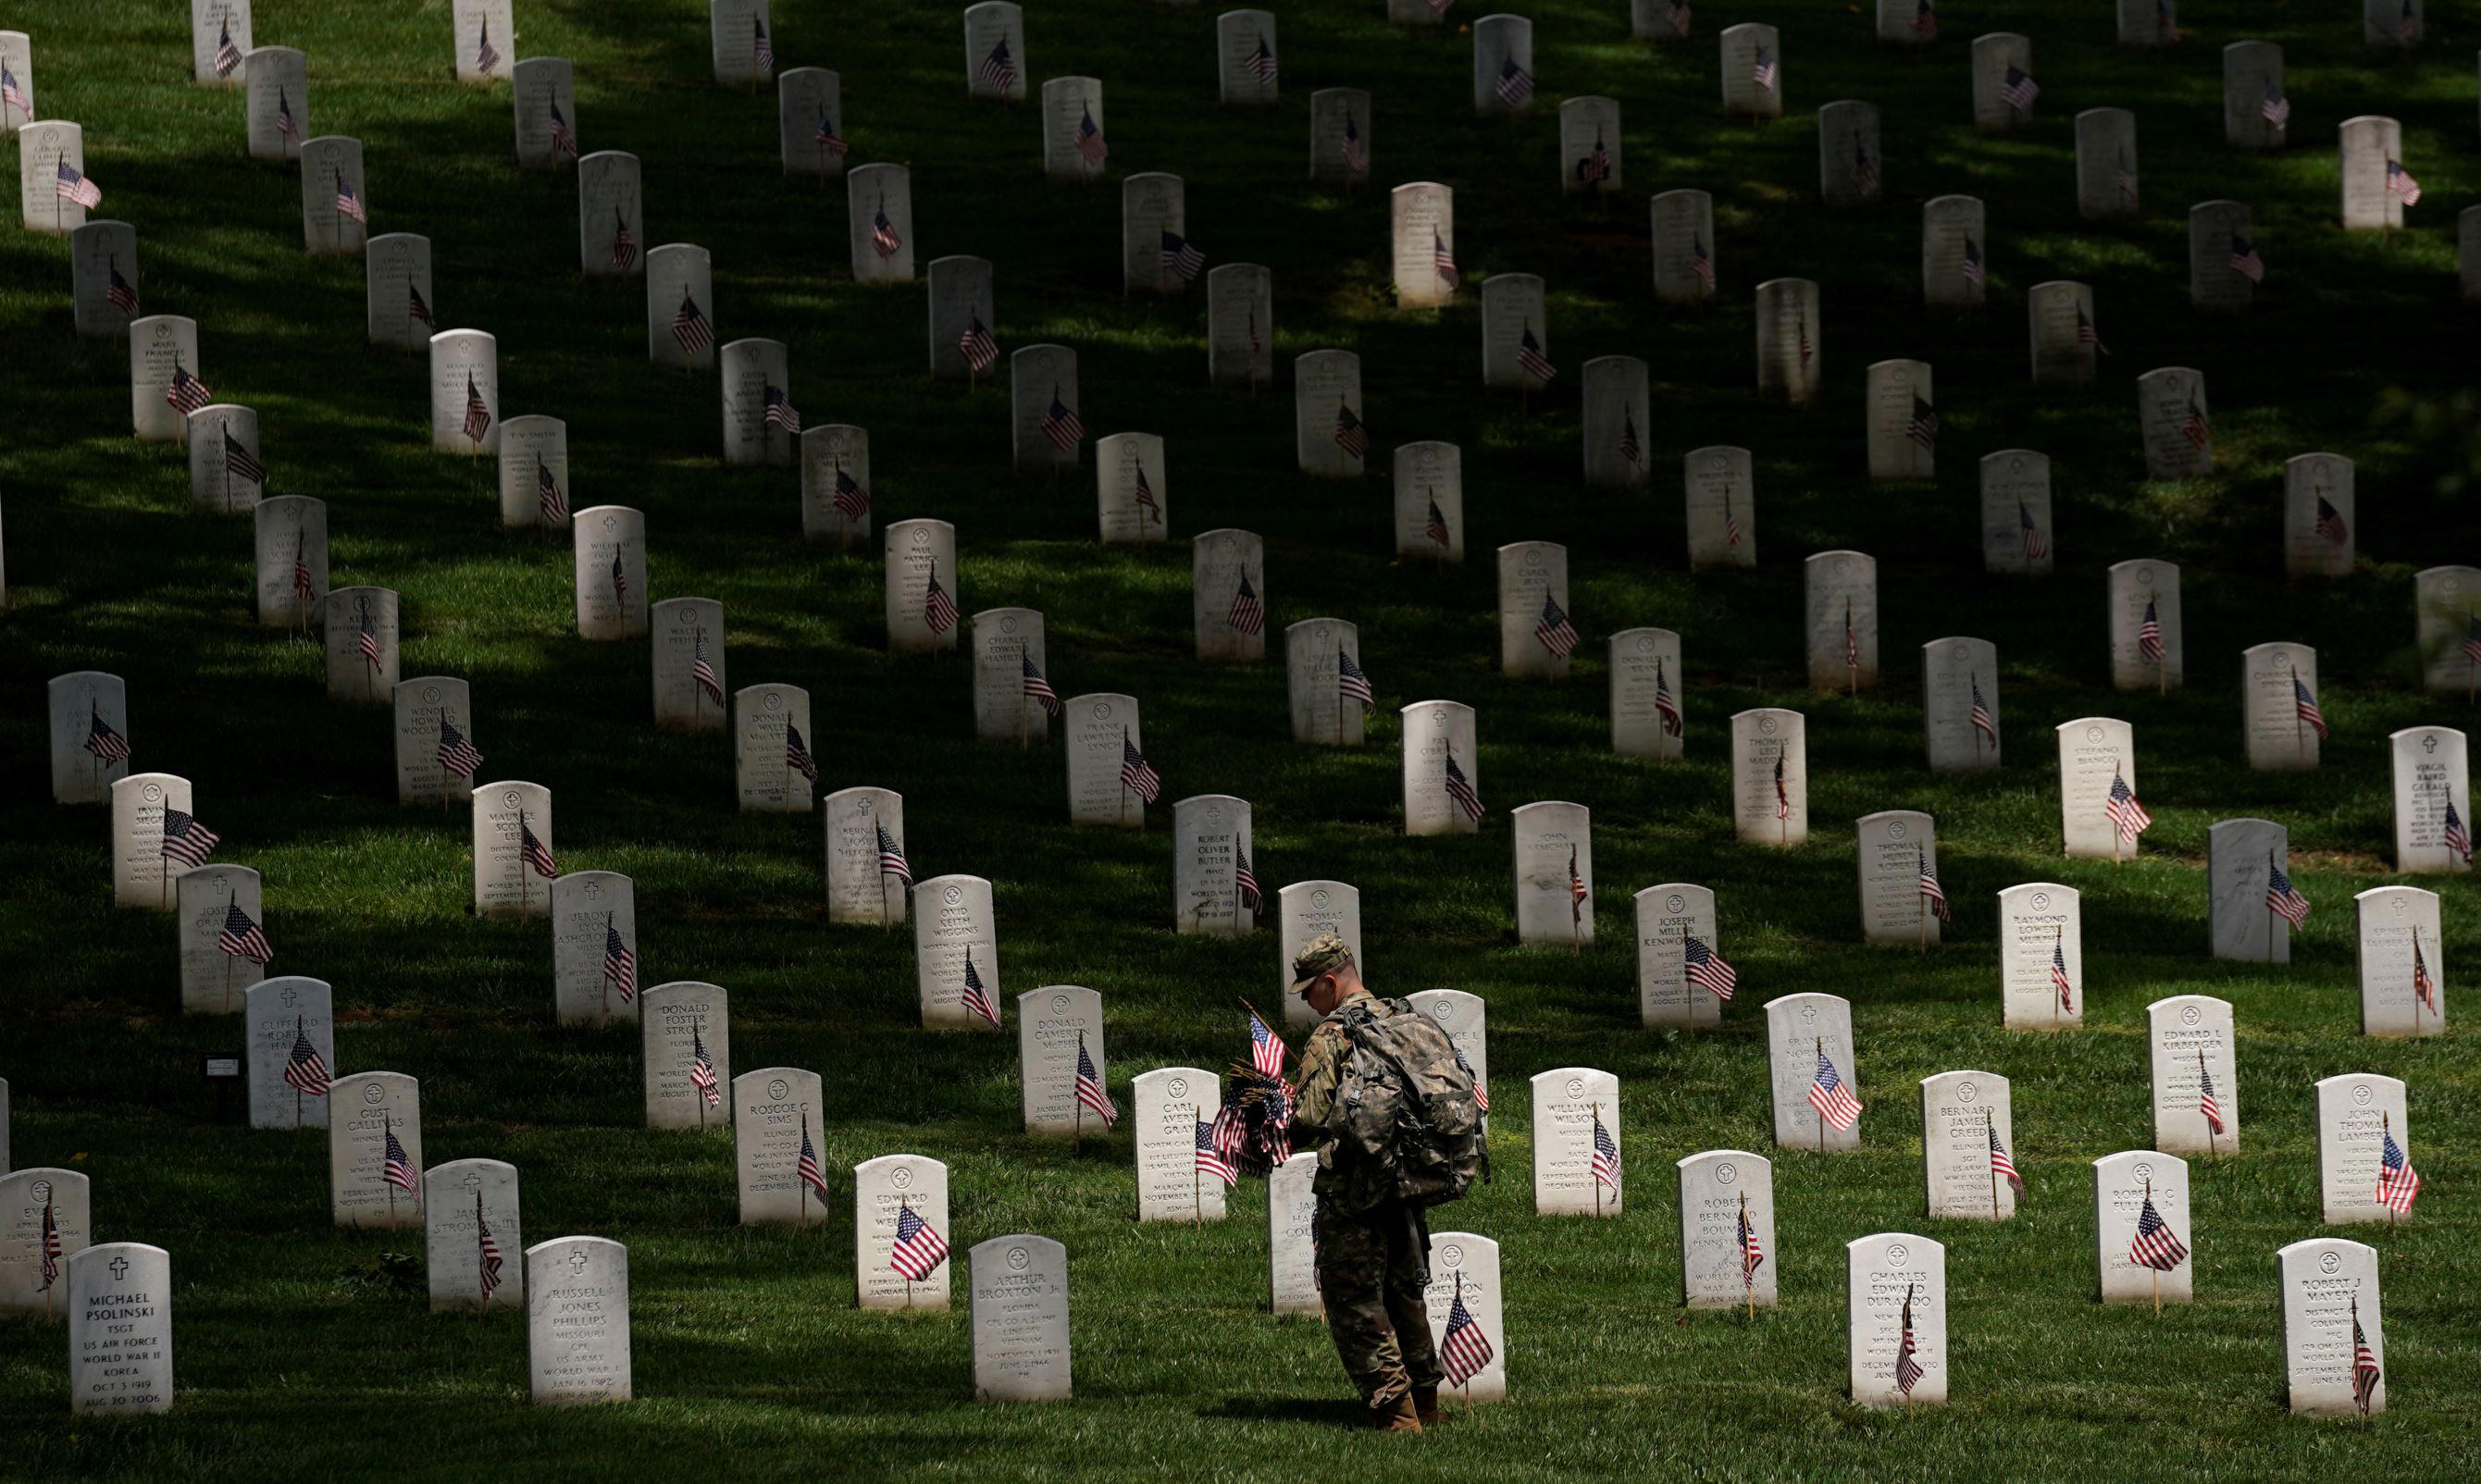 Slide 1 of 98: A soldier from the 3rd U.S. Infantry Regiment (Old Guard) takes part in